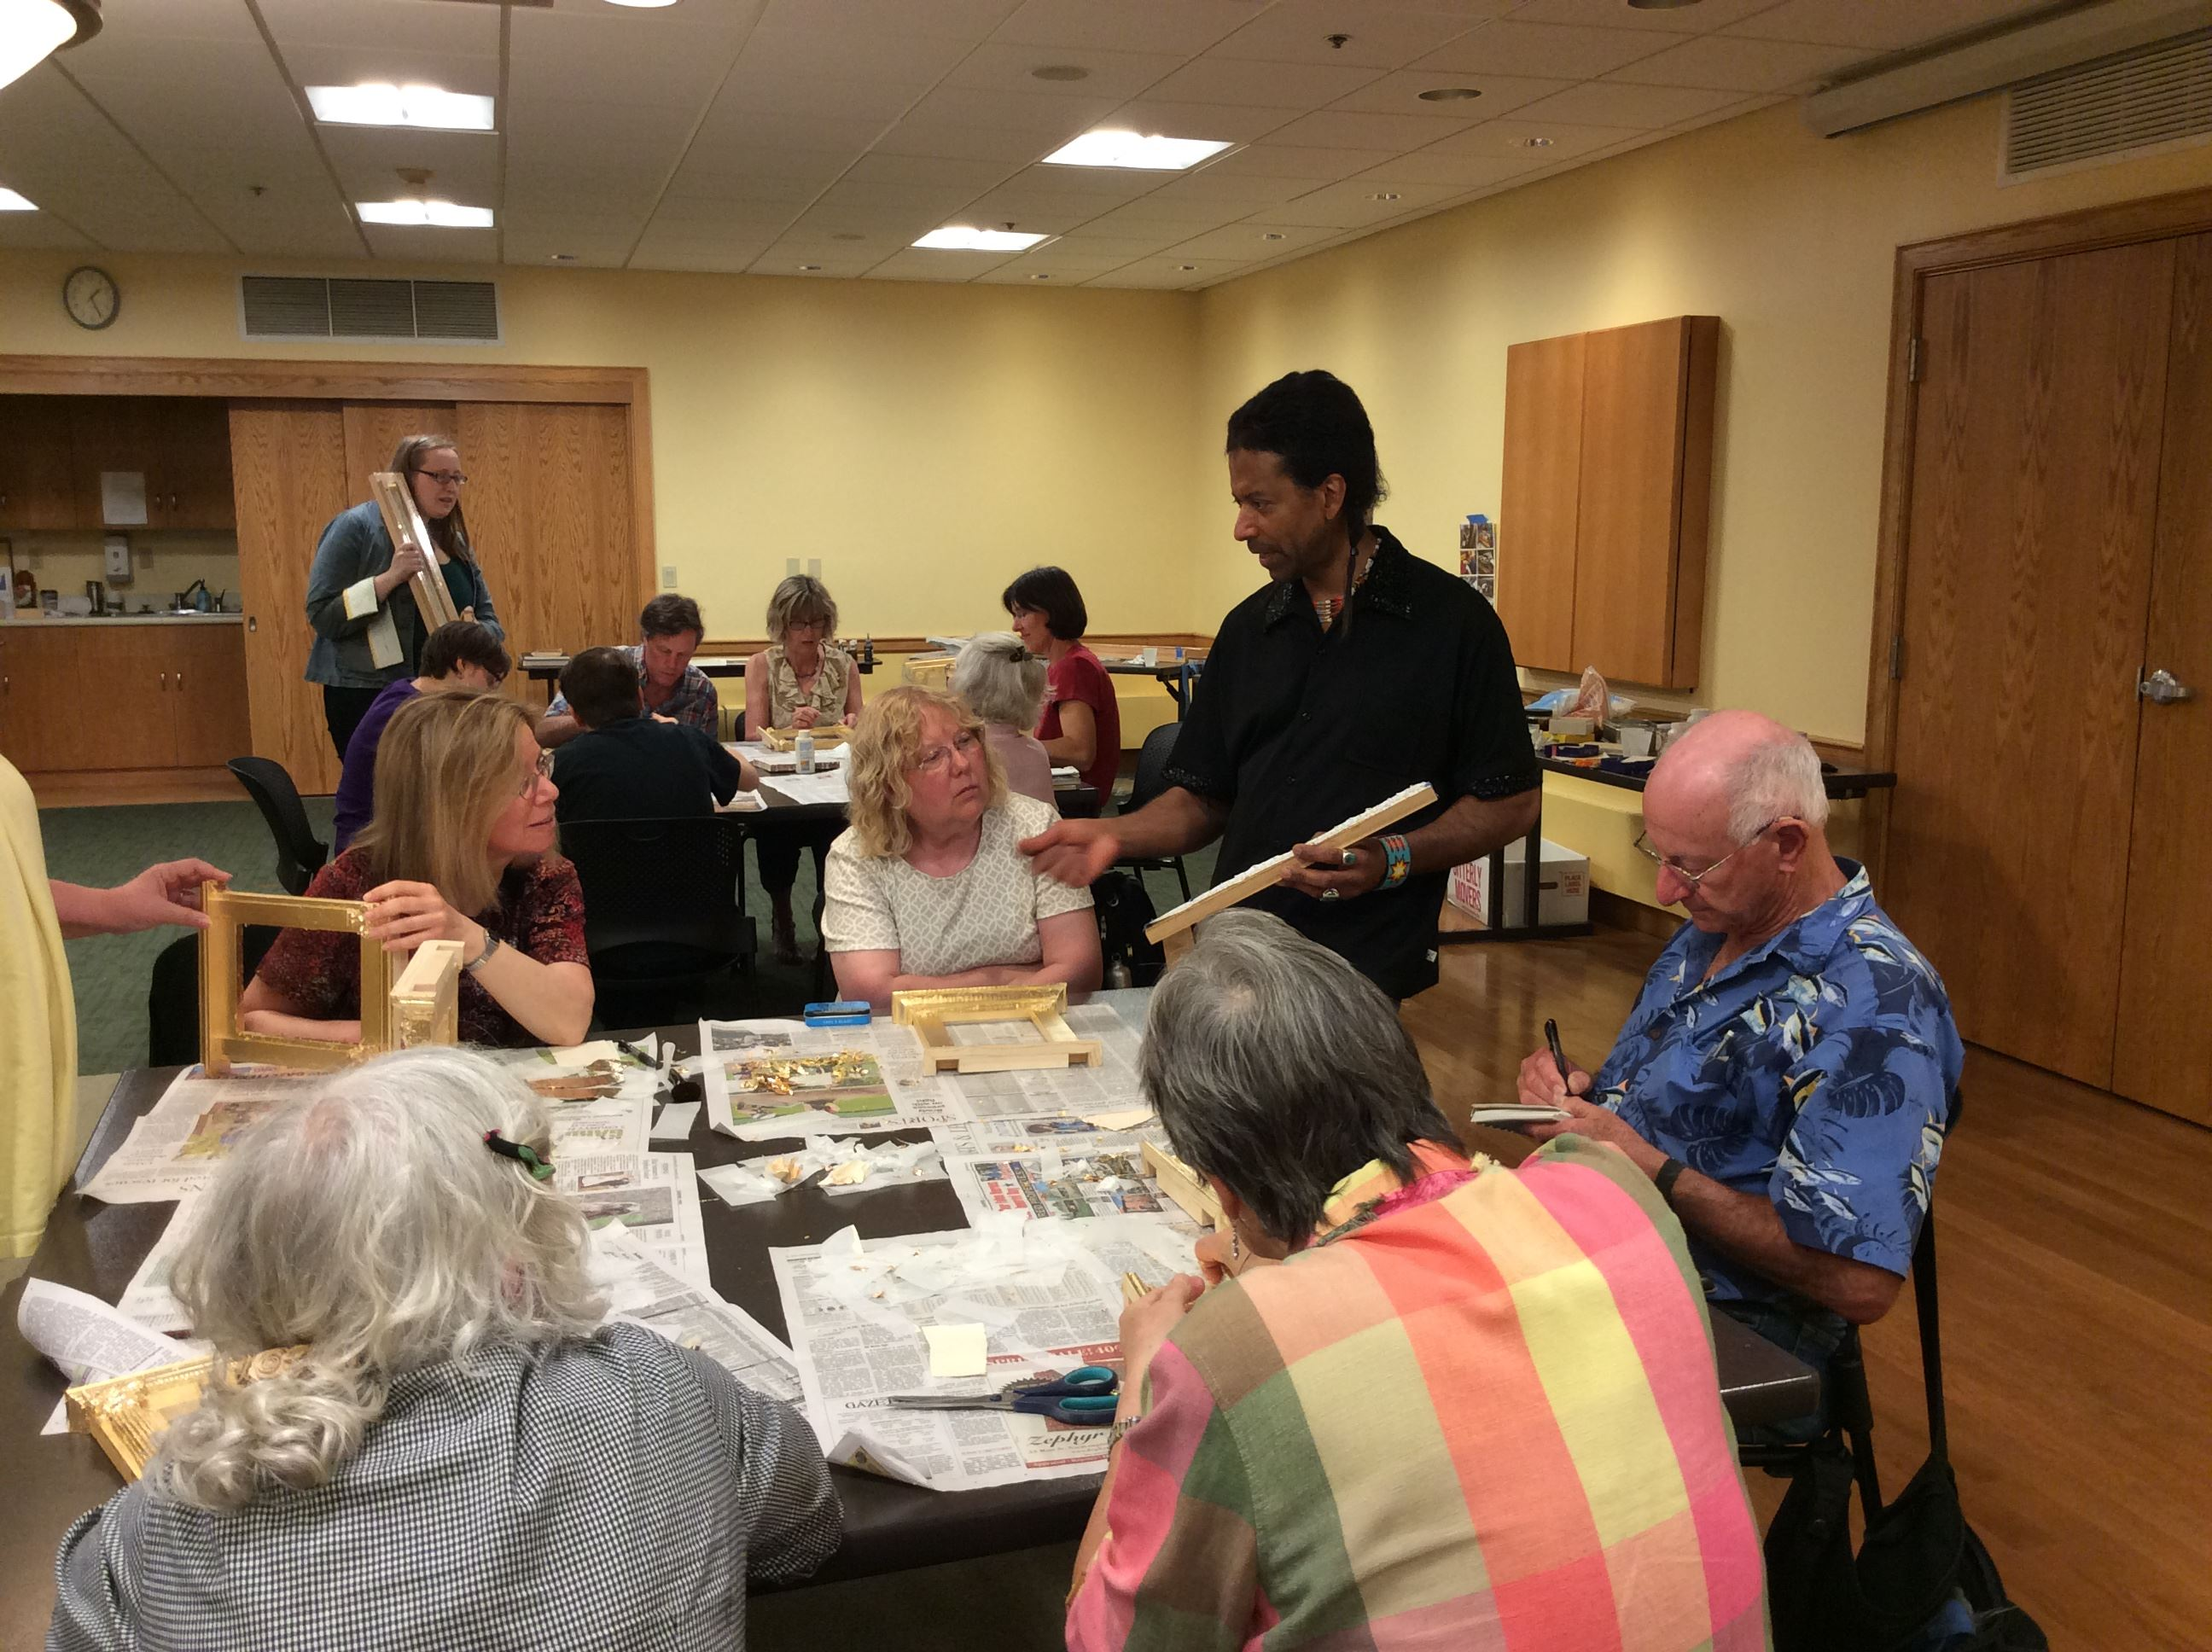 Bill Myers demonstrates a decorative technique during the frame gilding workshop